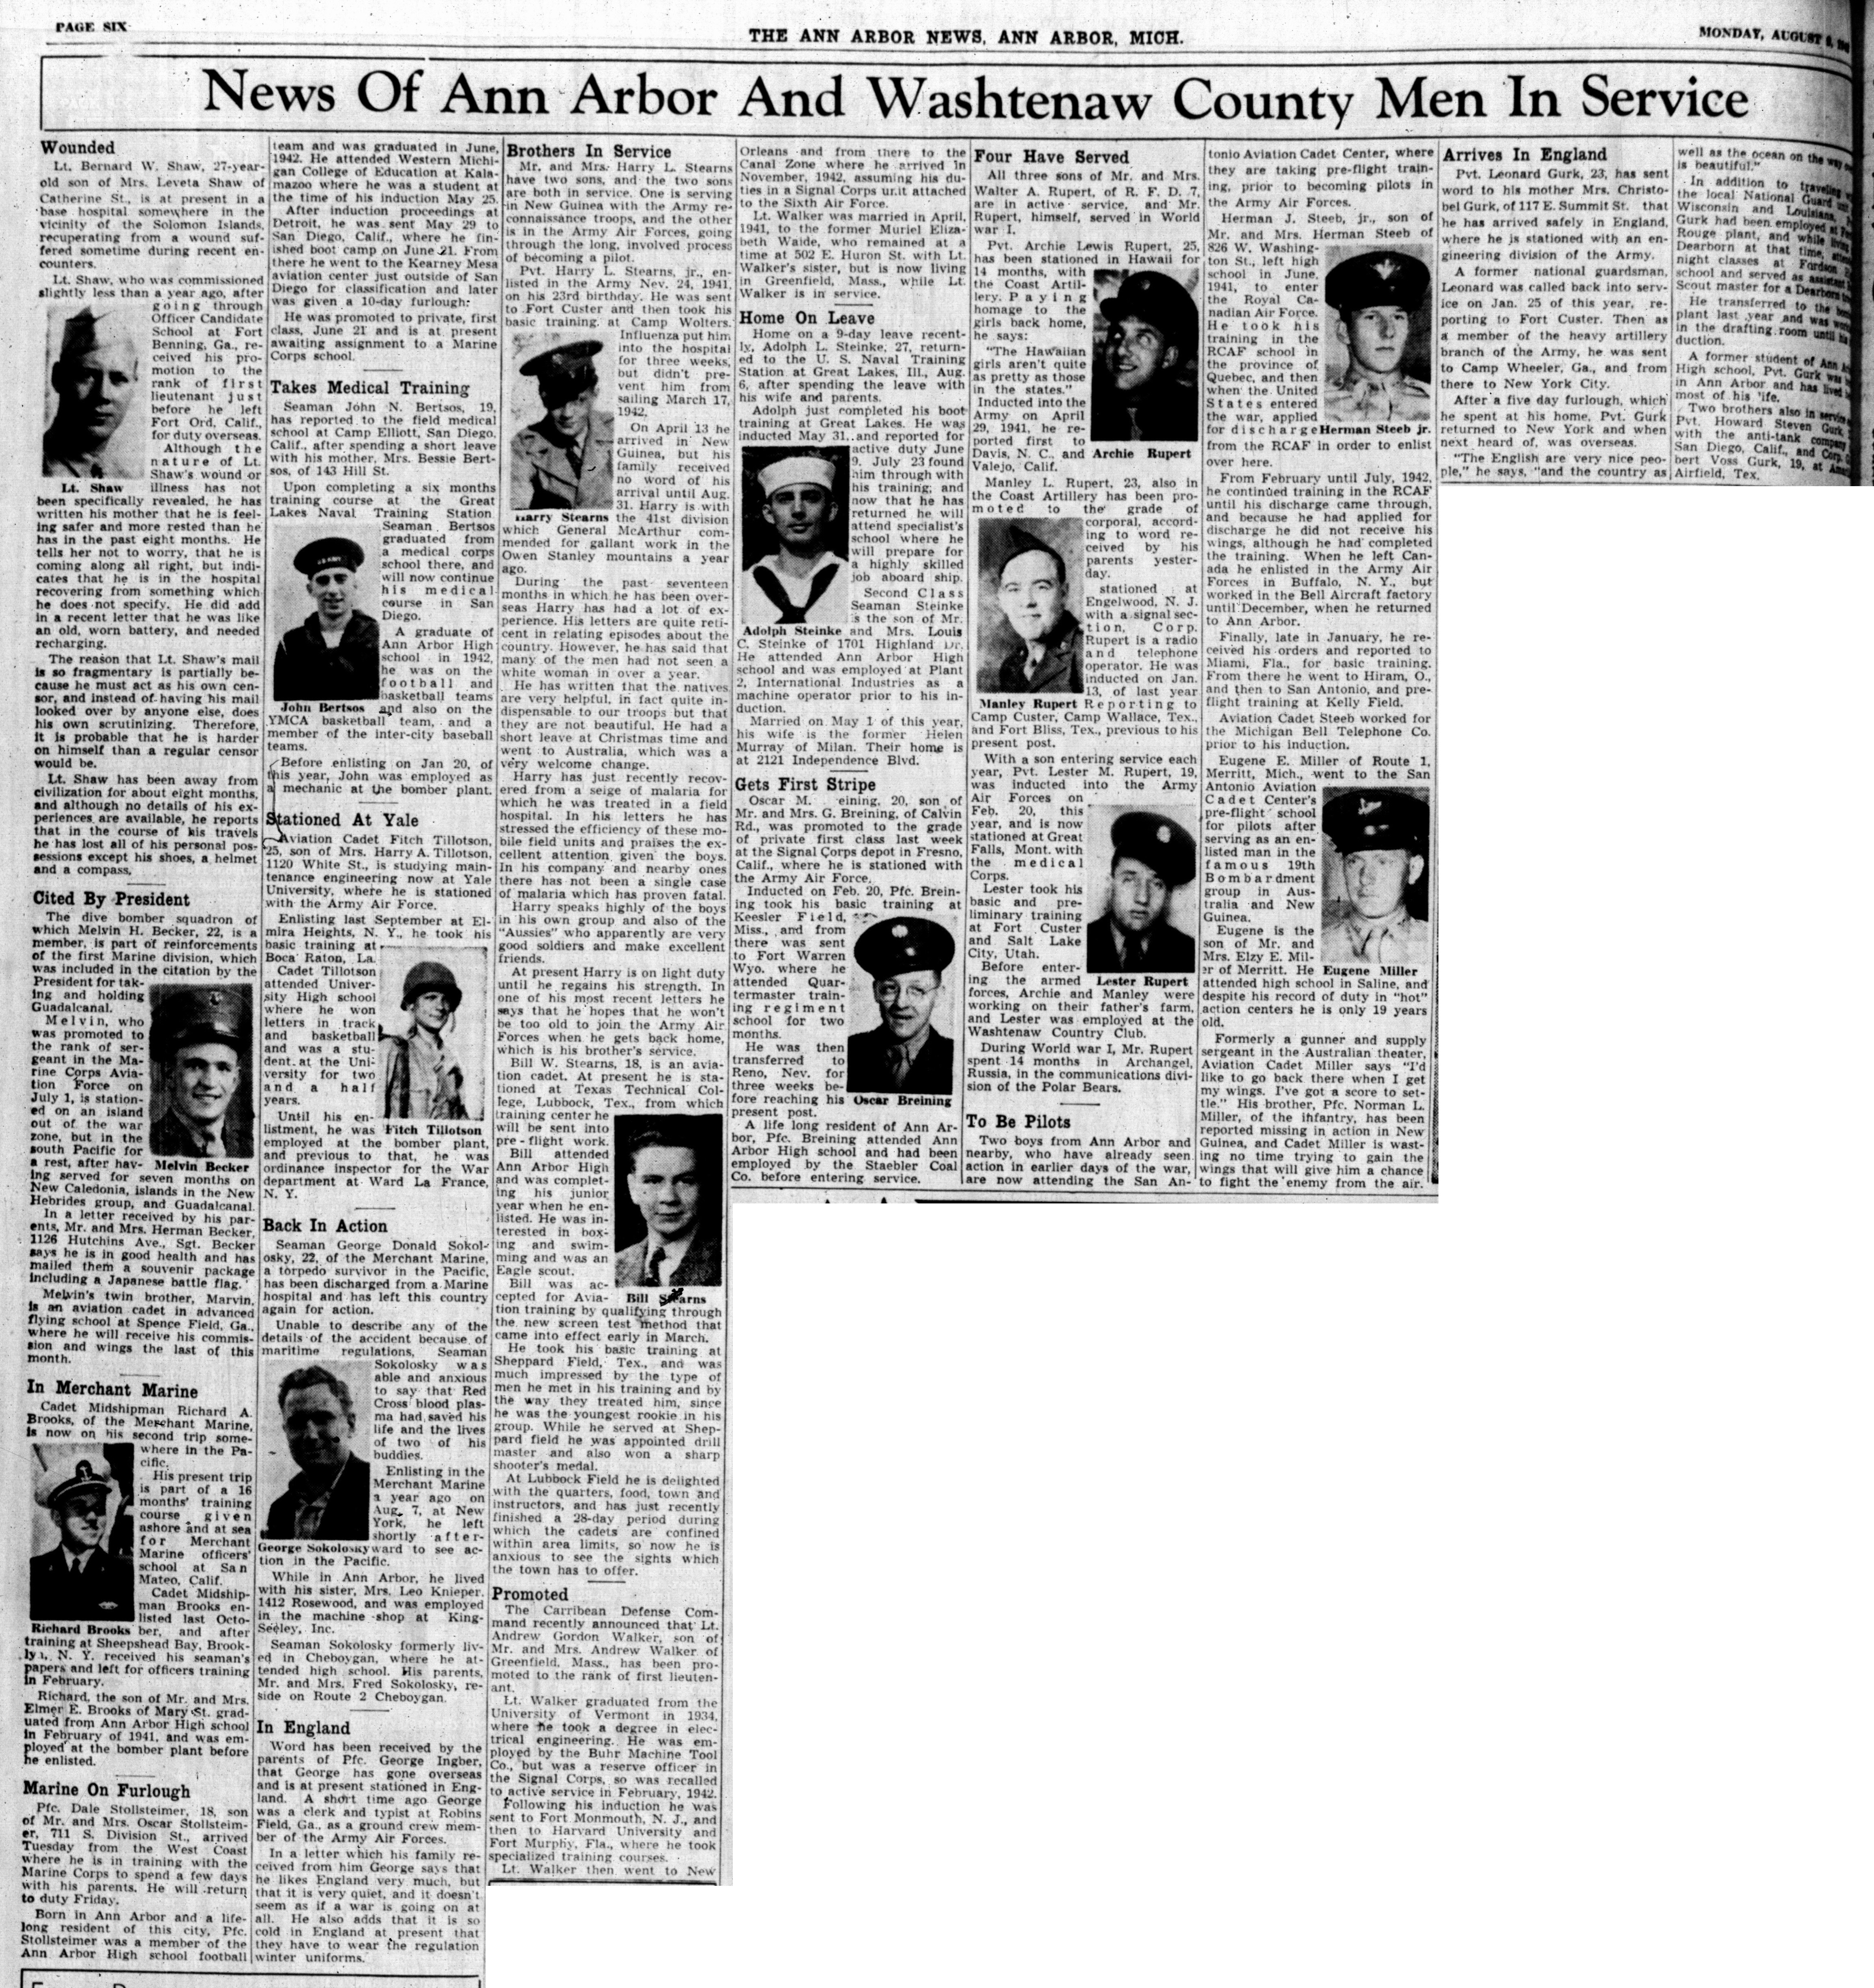 News Of Ann Arbor And Washtenaw County Men In Service: August 9, 1943 image